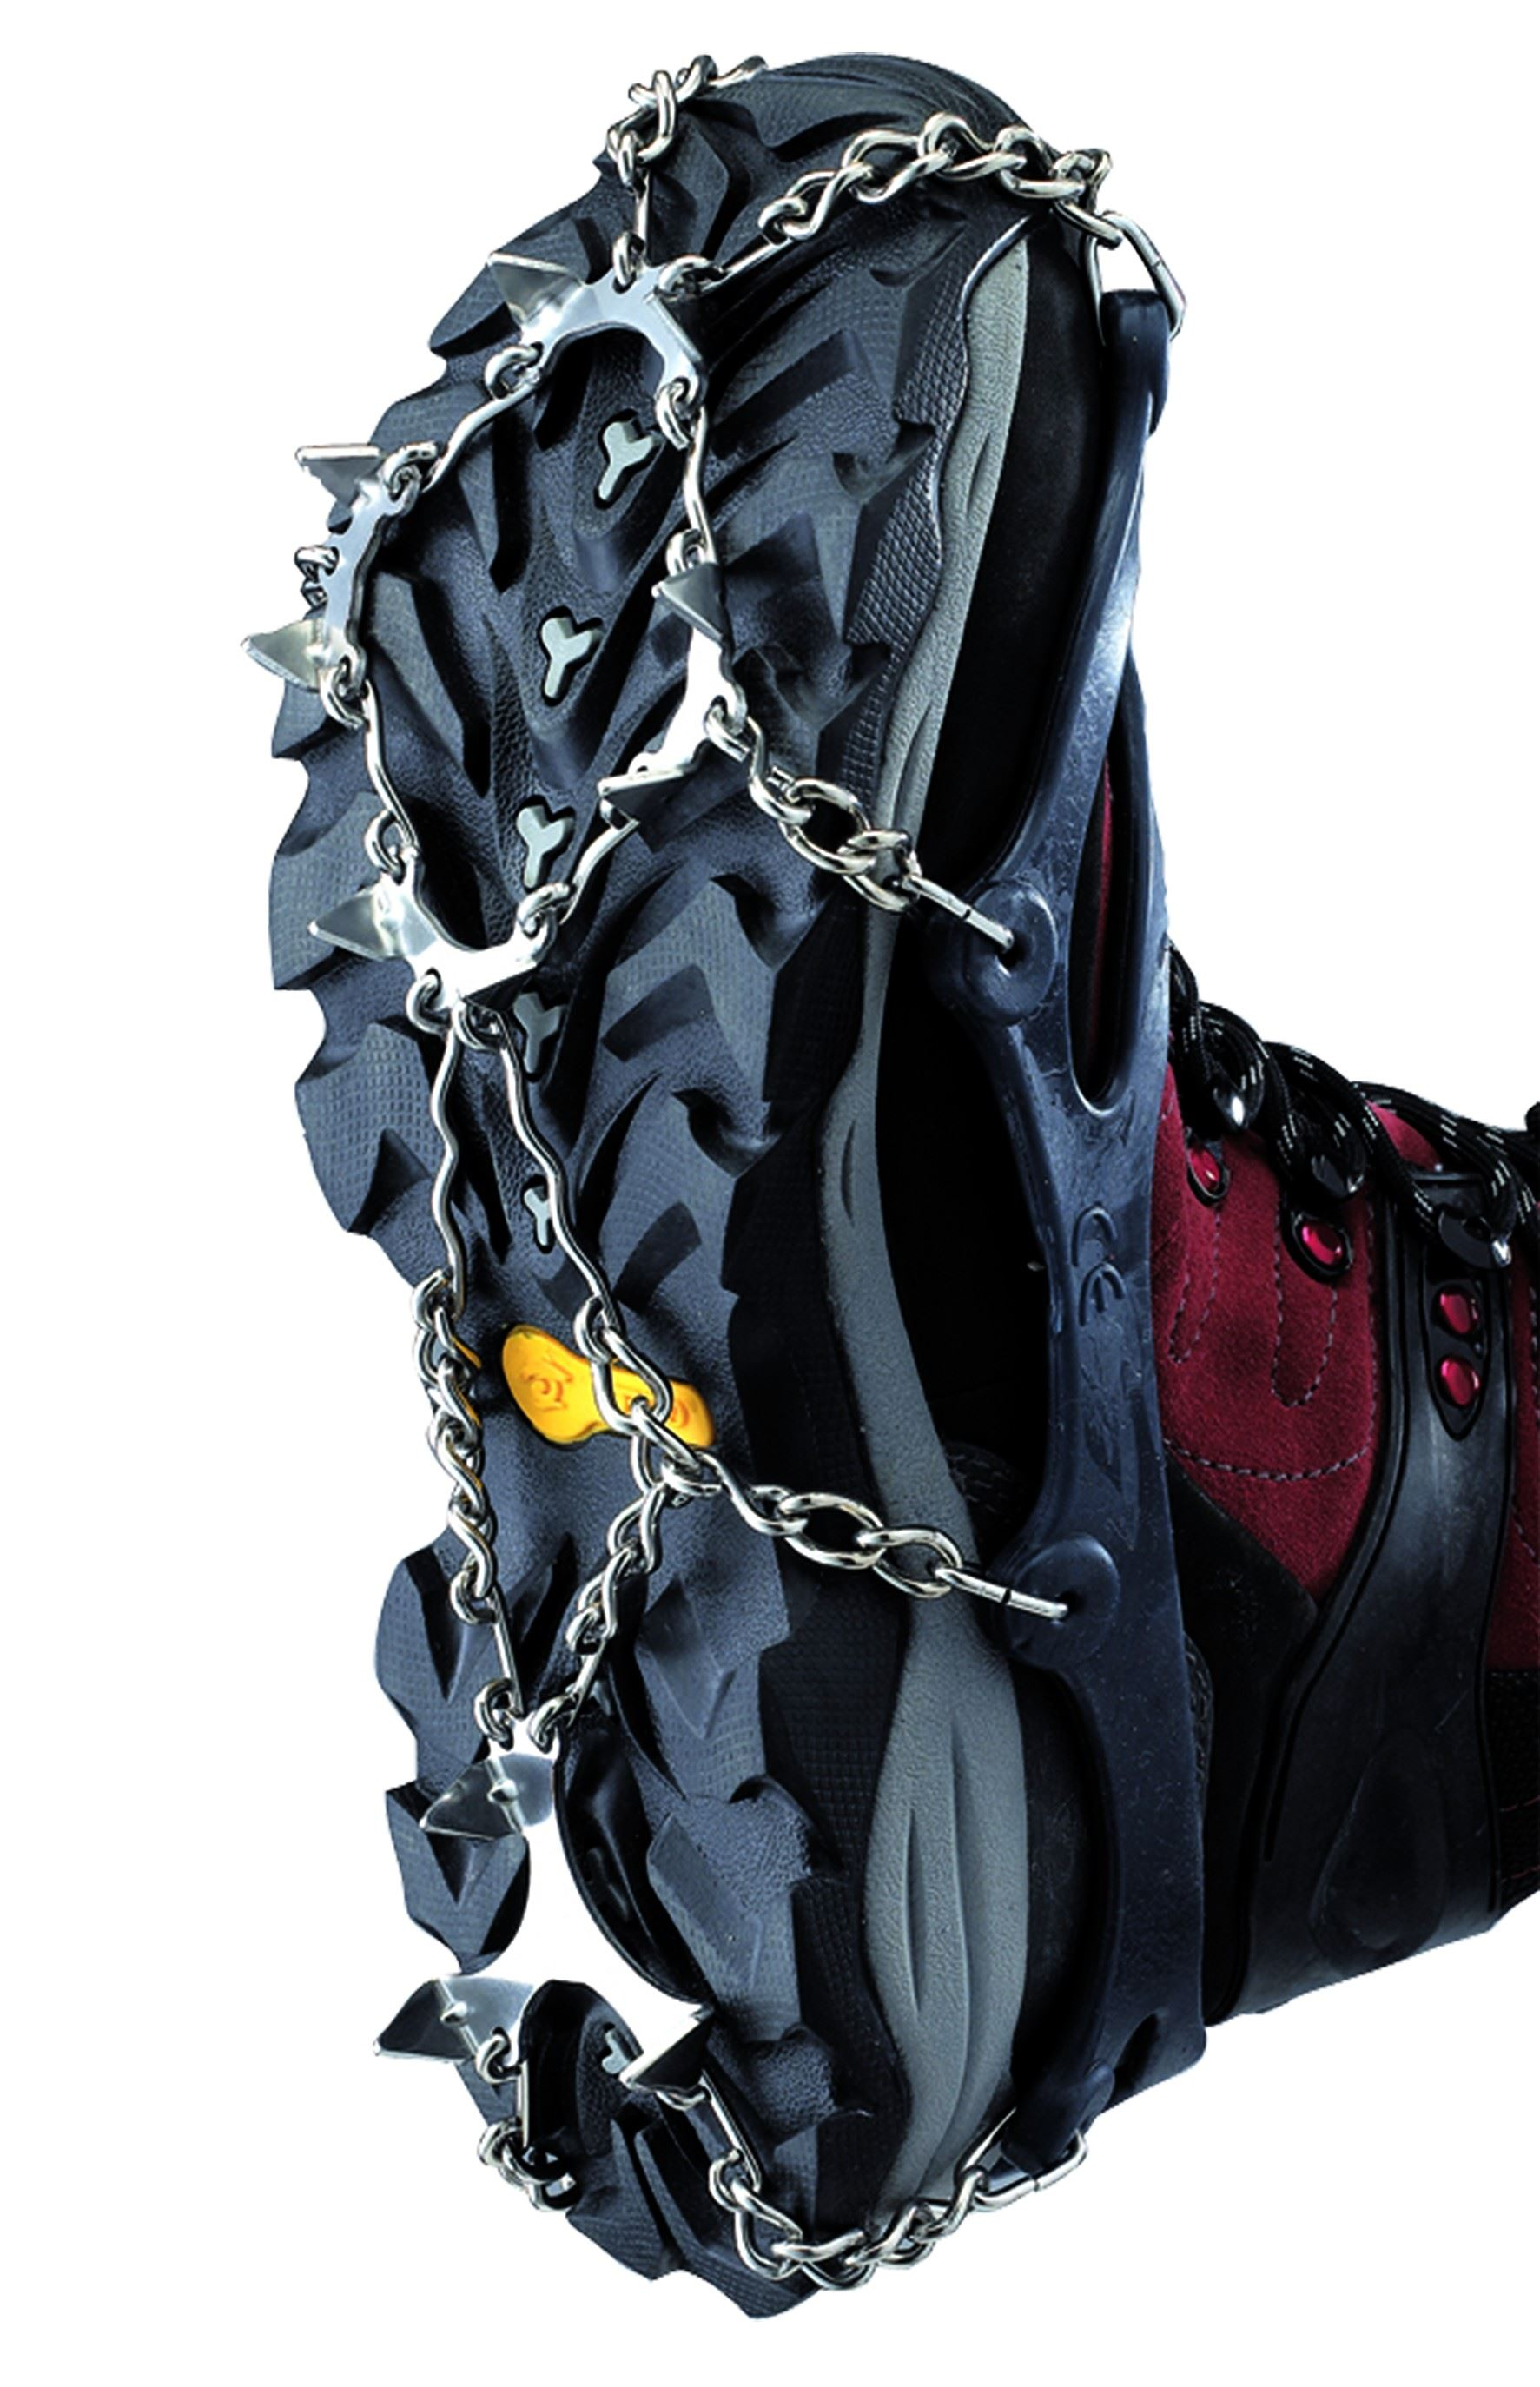 Chain crampons for the winter boots